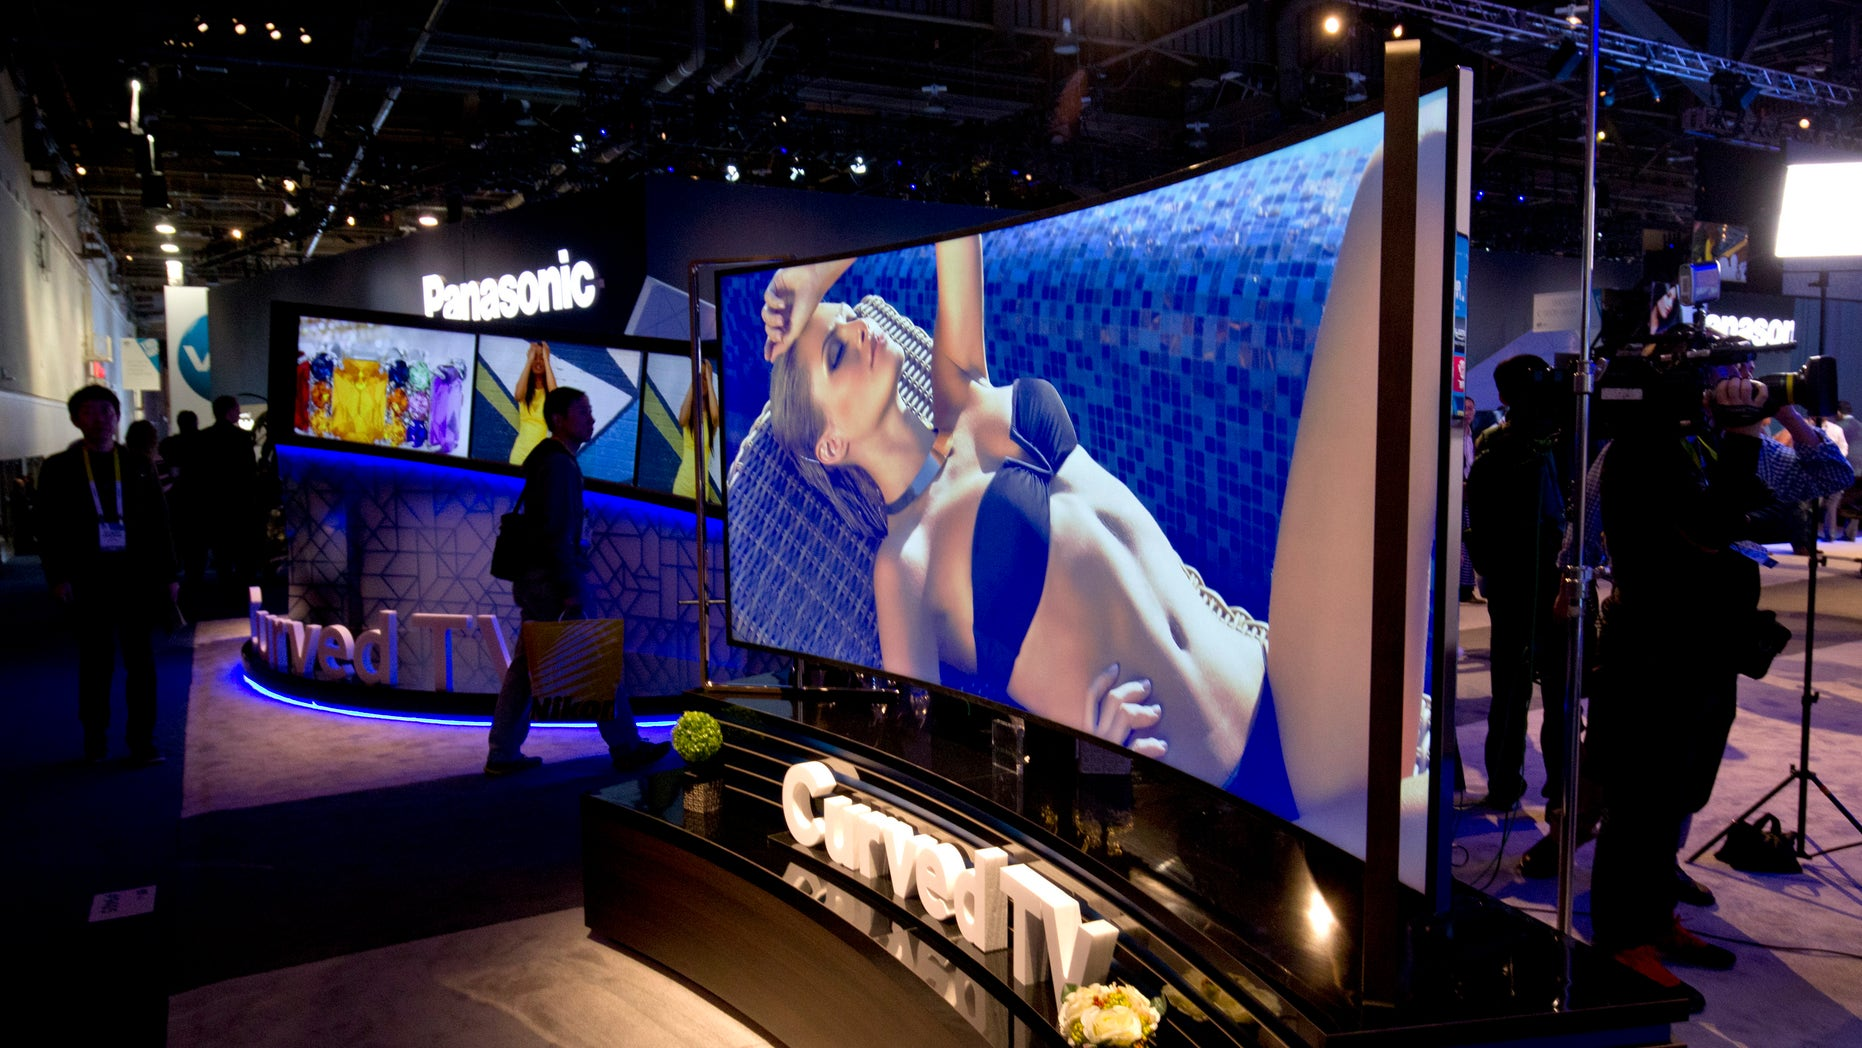 A 105-inch, curved 5K LED TV by Haier is displayed during the 2015 International Consumer Electronics Show (CES) in Las Vegas, Nevada January 6, 2015. REUTERS/Steve Marcus (UNITED STATES - Tags: SCIENCE TECHNOLOGY BUSINESS) - RTR4KANN